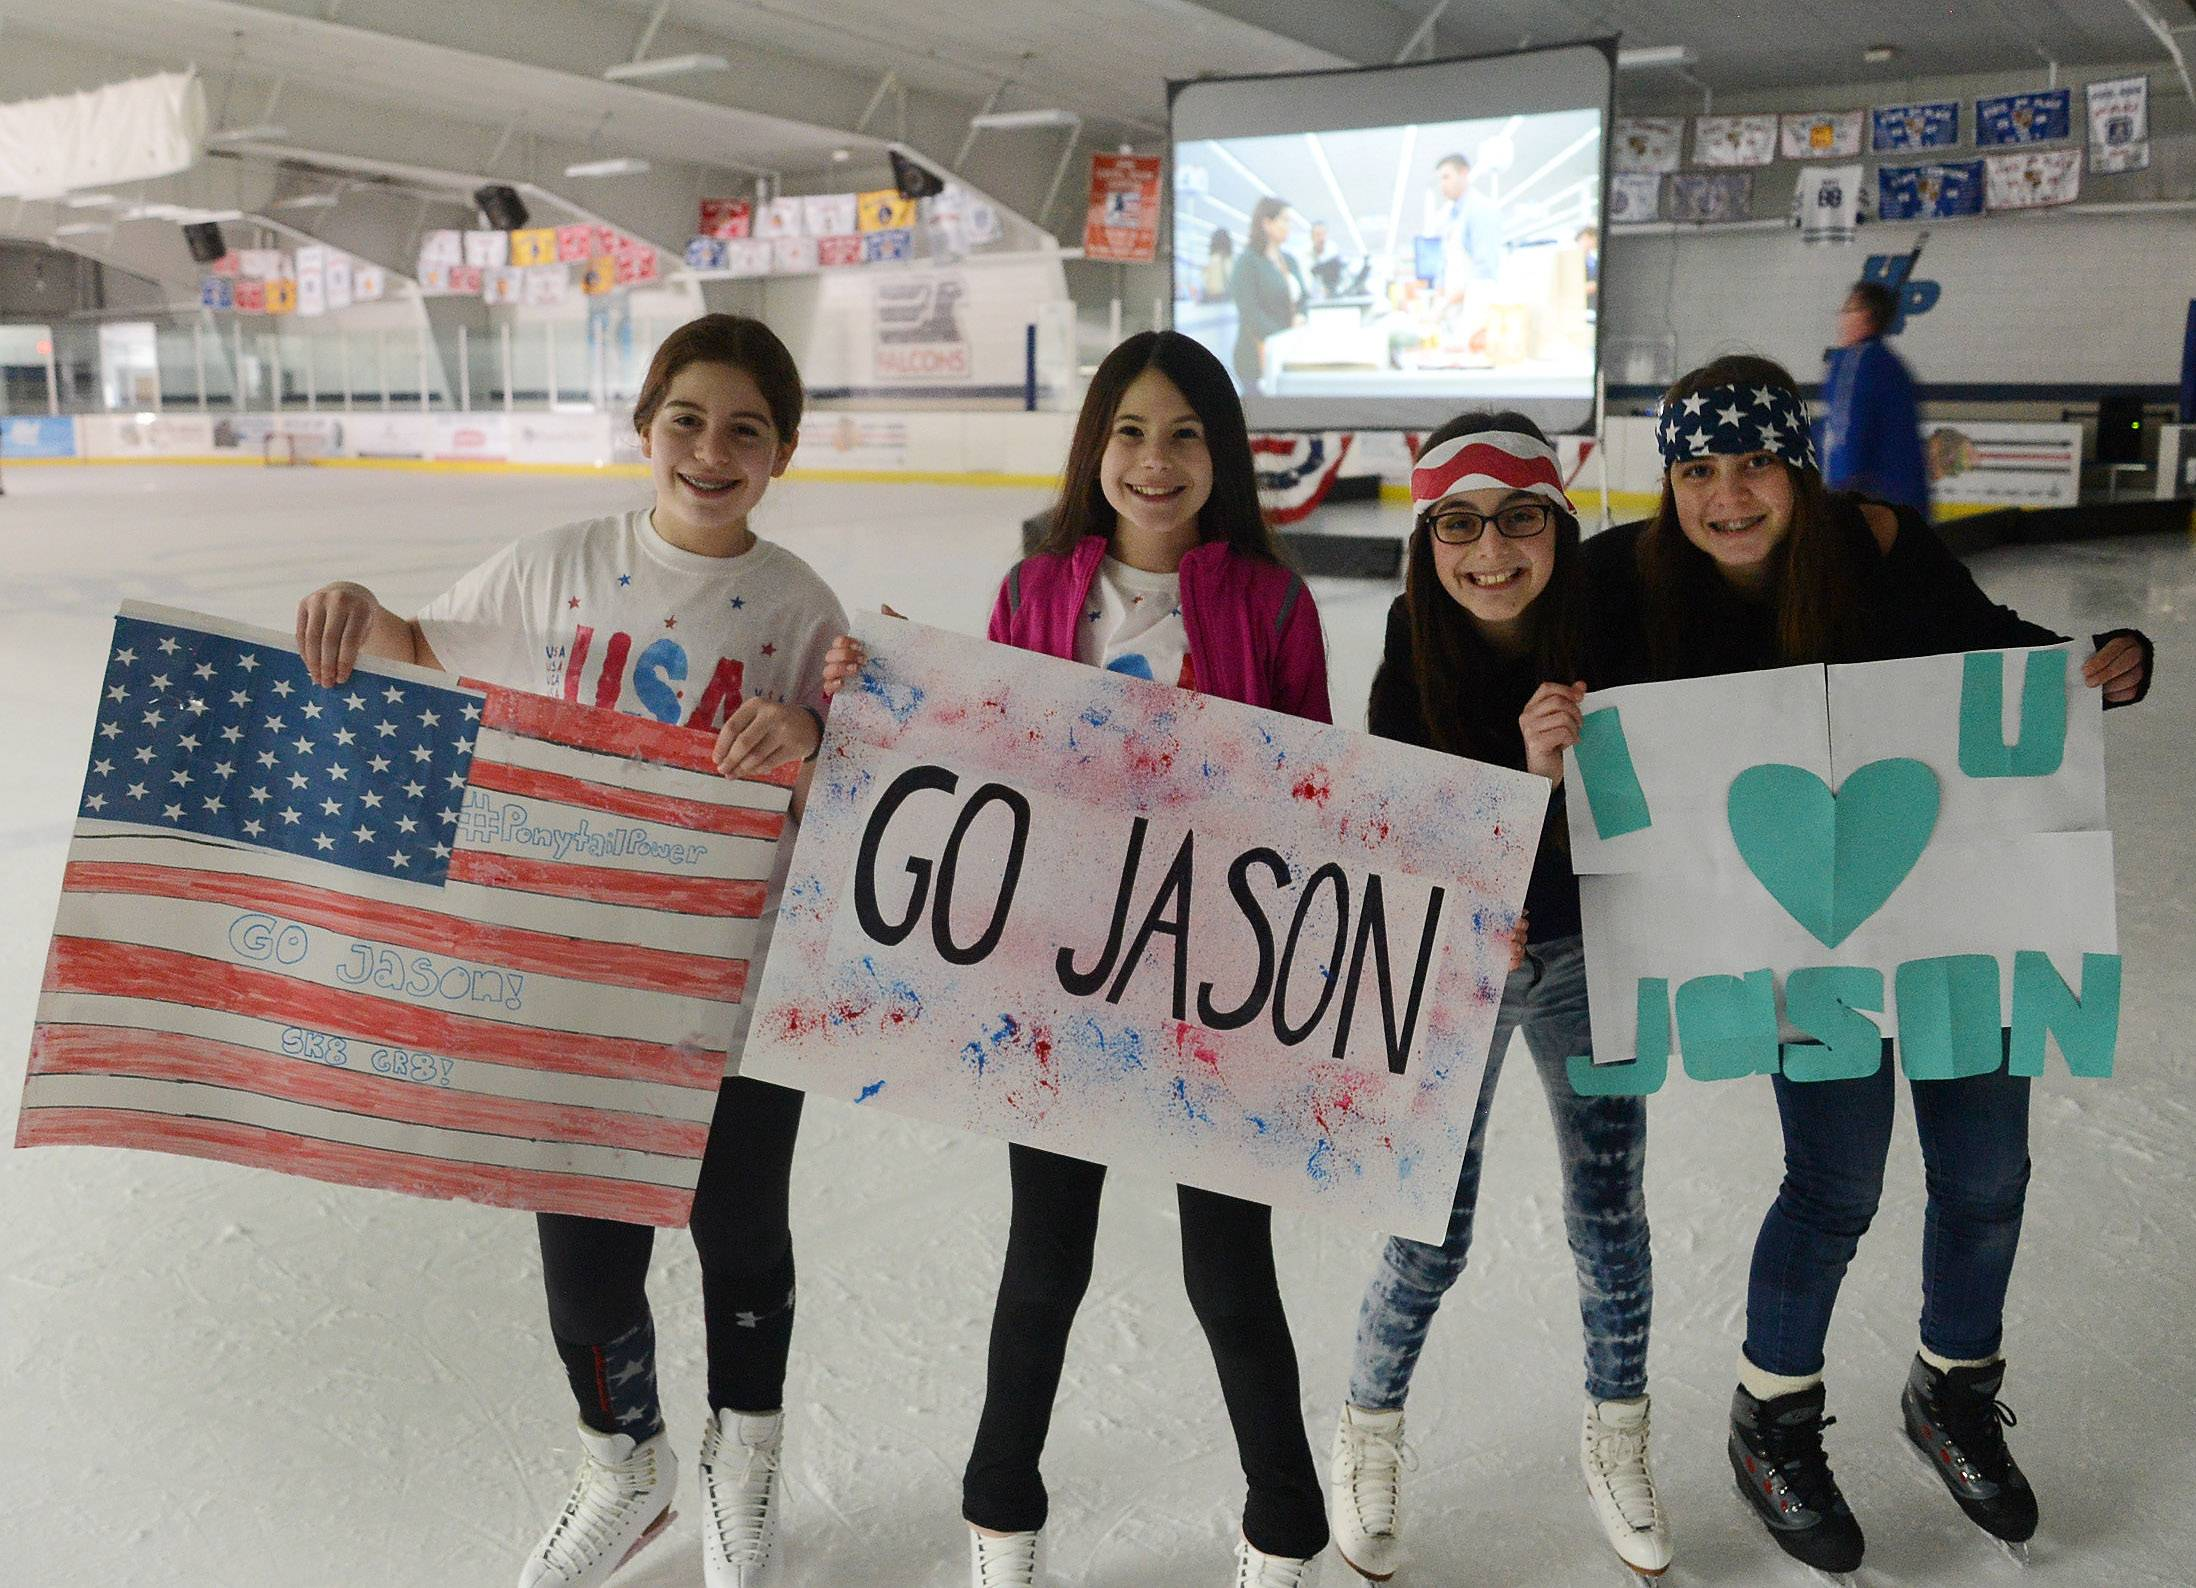 Fans of Jason Brown from left, Holly Gussis, Kylie Gimbel, Ina Hoffman and Hannah Frazer, cheer during the viewing party at the Centennial Ice Arena Friday for U.S. Olympic skater Jason Brown from Highland Park.